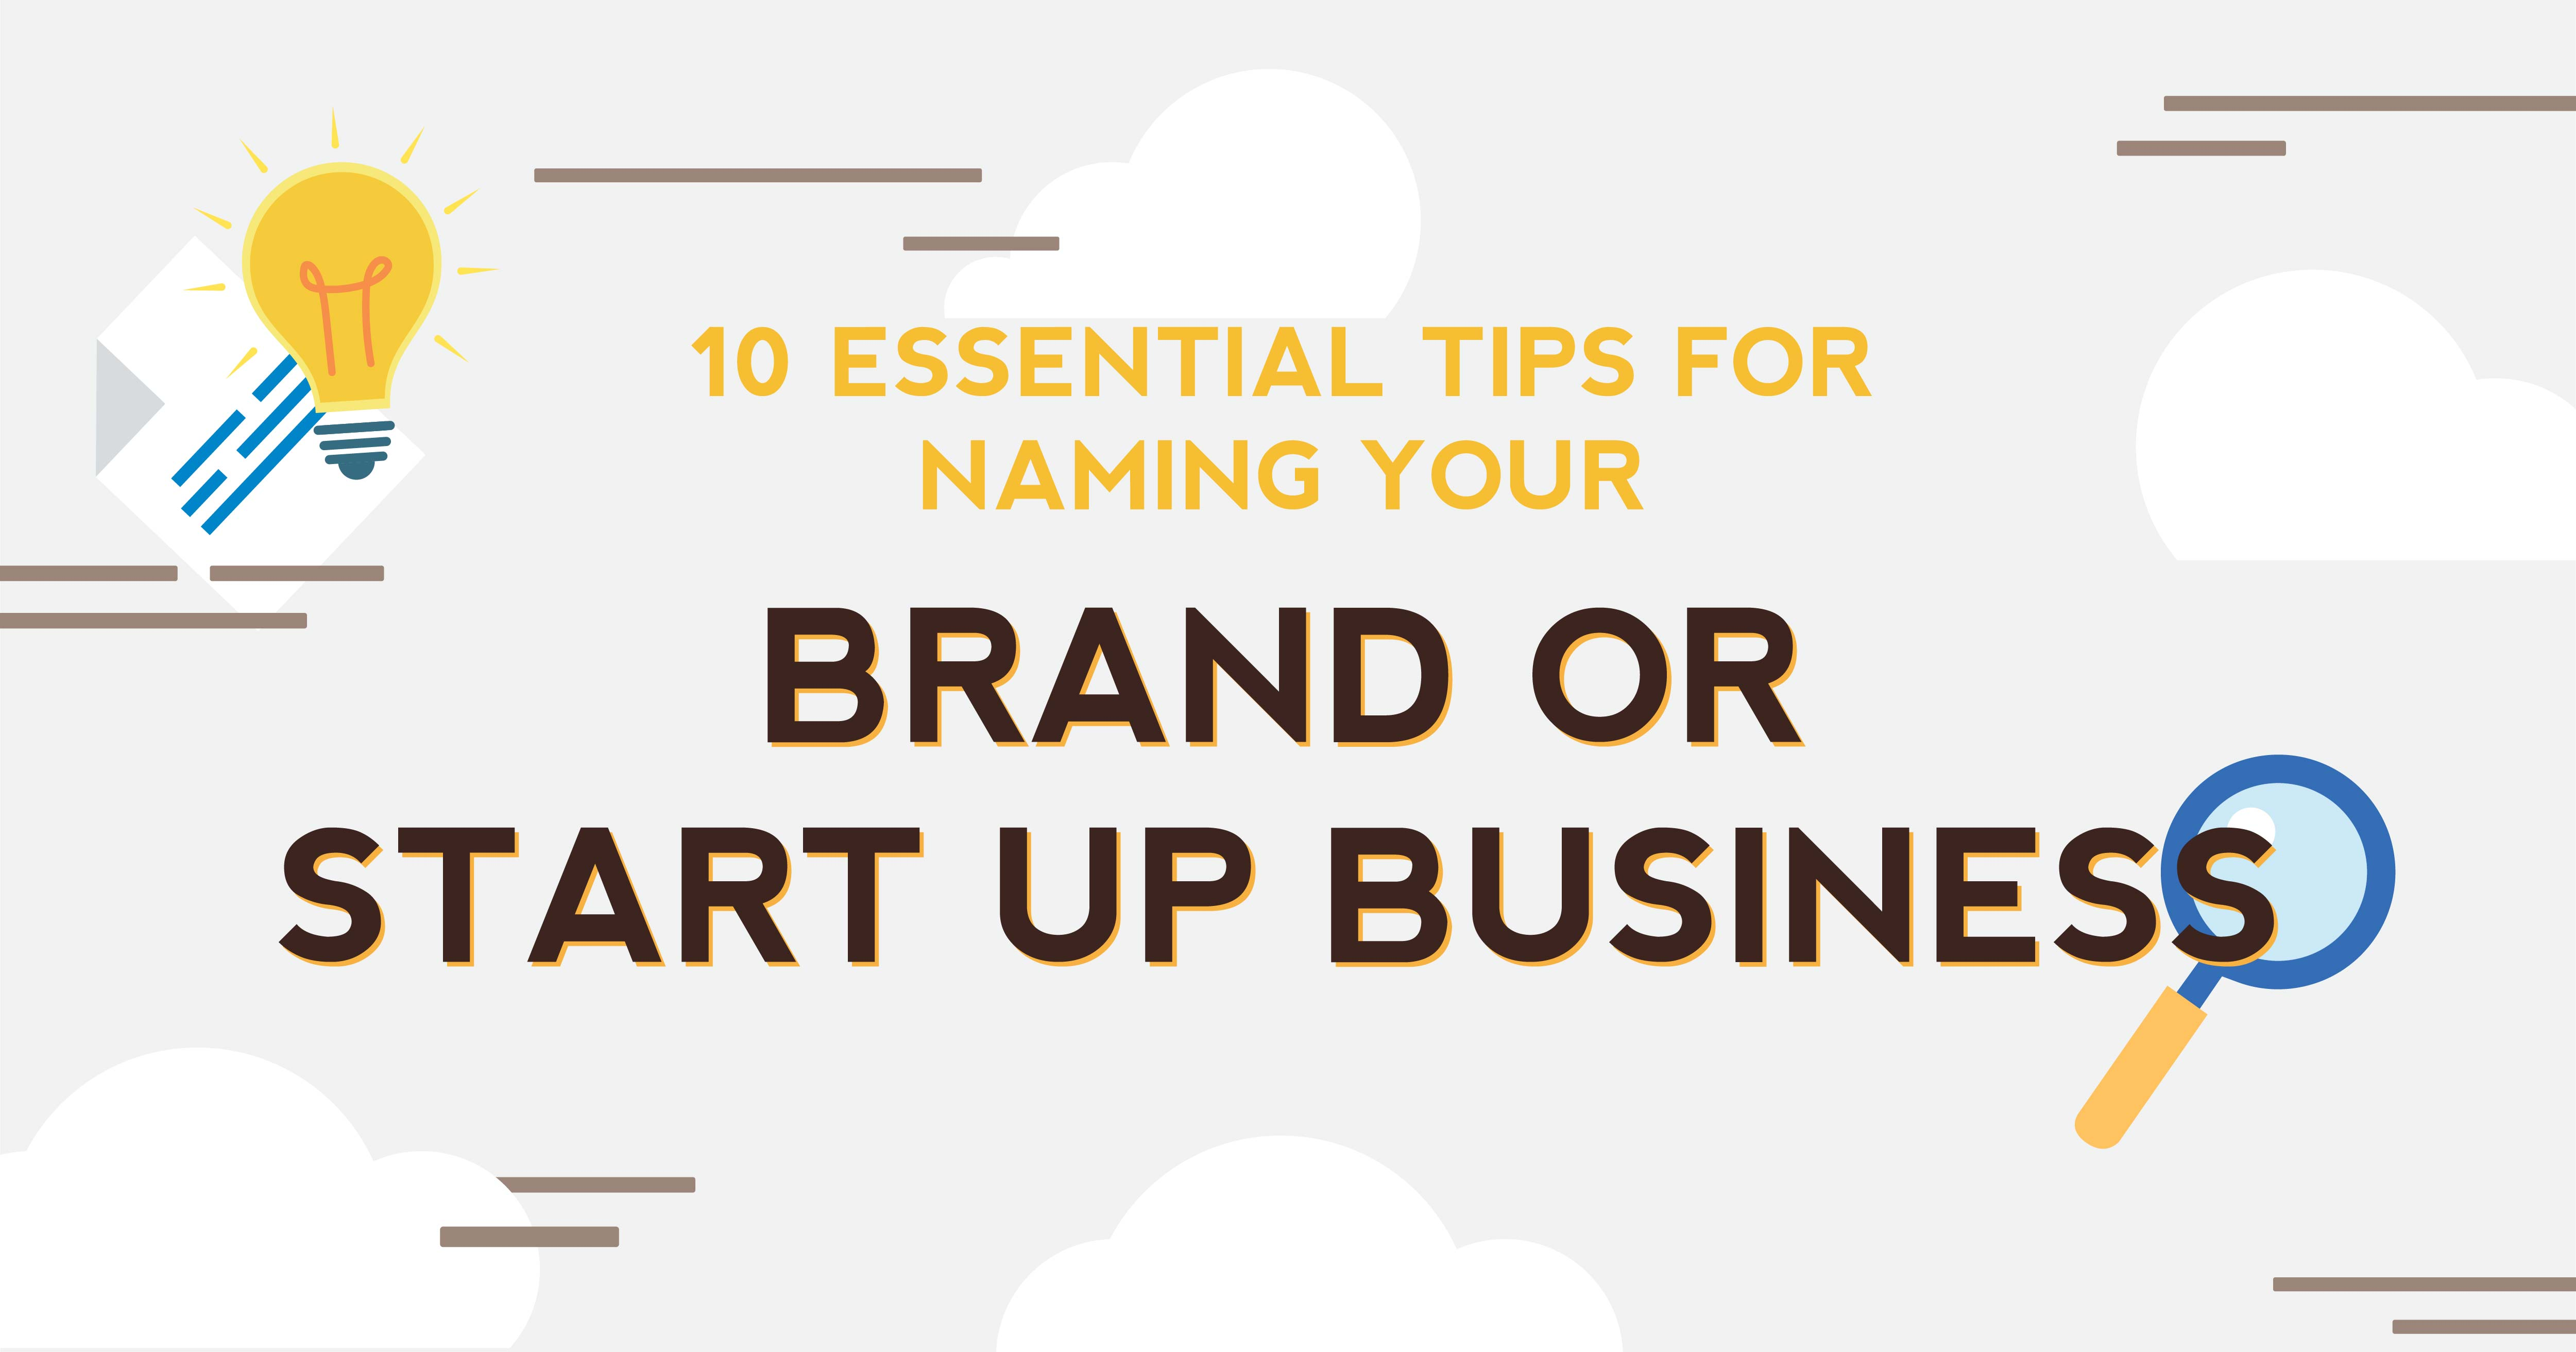 10 Essential Tips For Naming Your Brand or Start Up Business